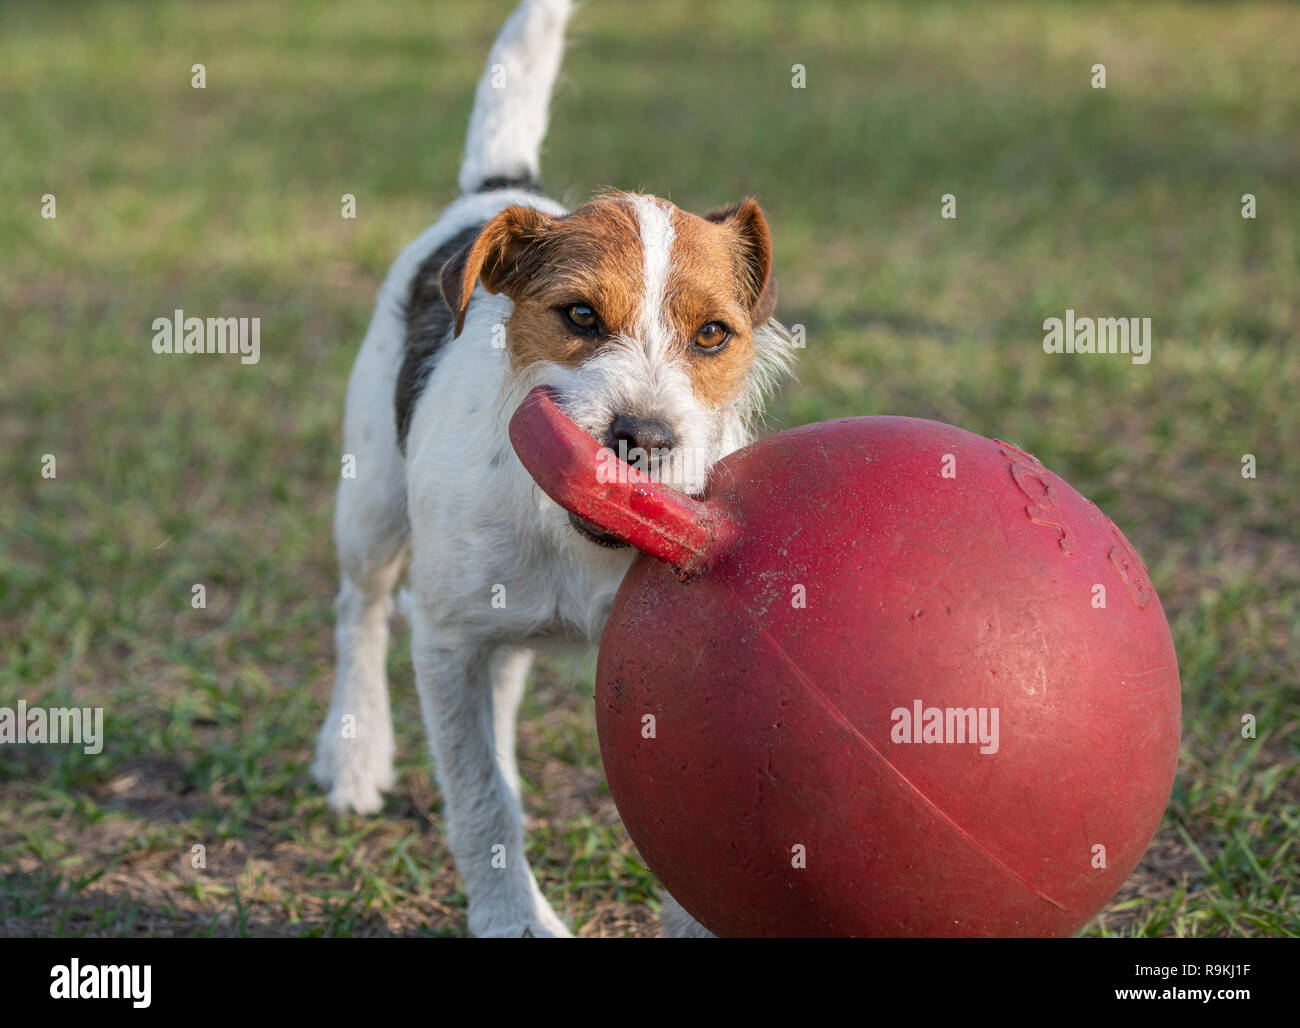 Jack Russel Terrier dog plays with large Jolly ball - Stock Image